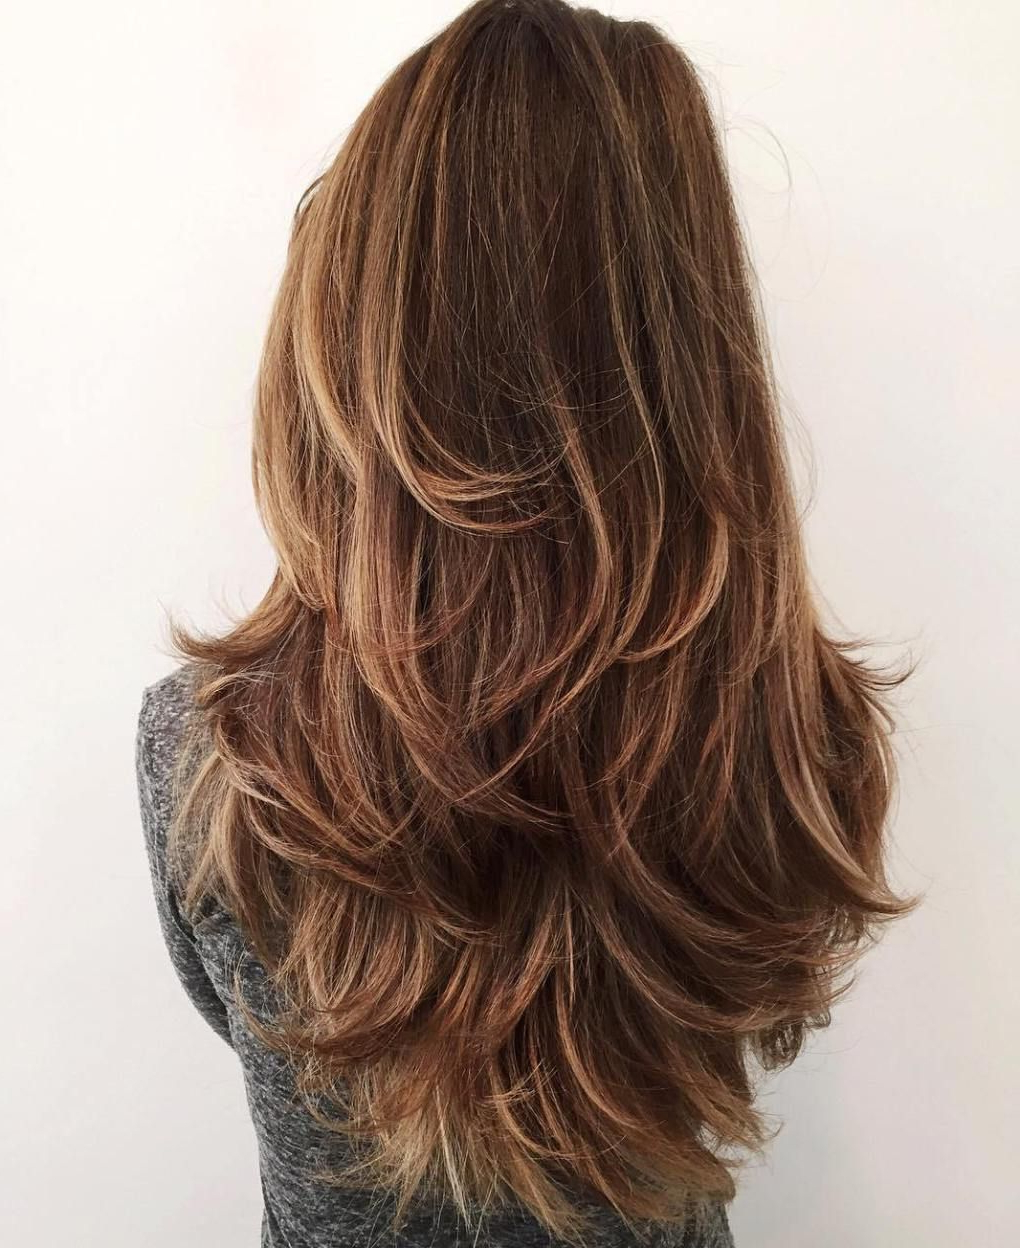 2019 Straight And Chic Long Layers Hairstyles Within 50 Lovely Long Shag Haircuts For Effortless Stylish Looks In  (View 3 of 20)